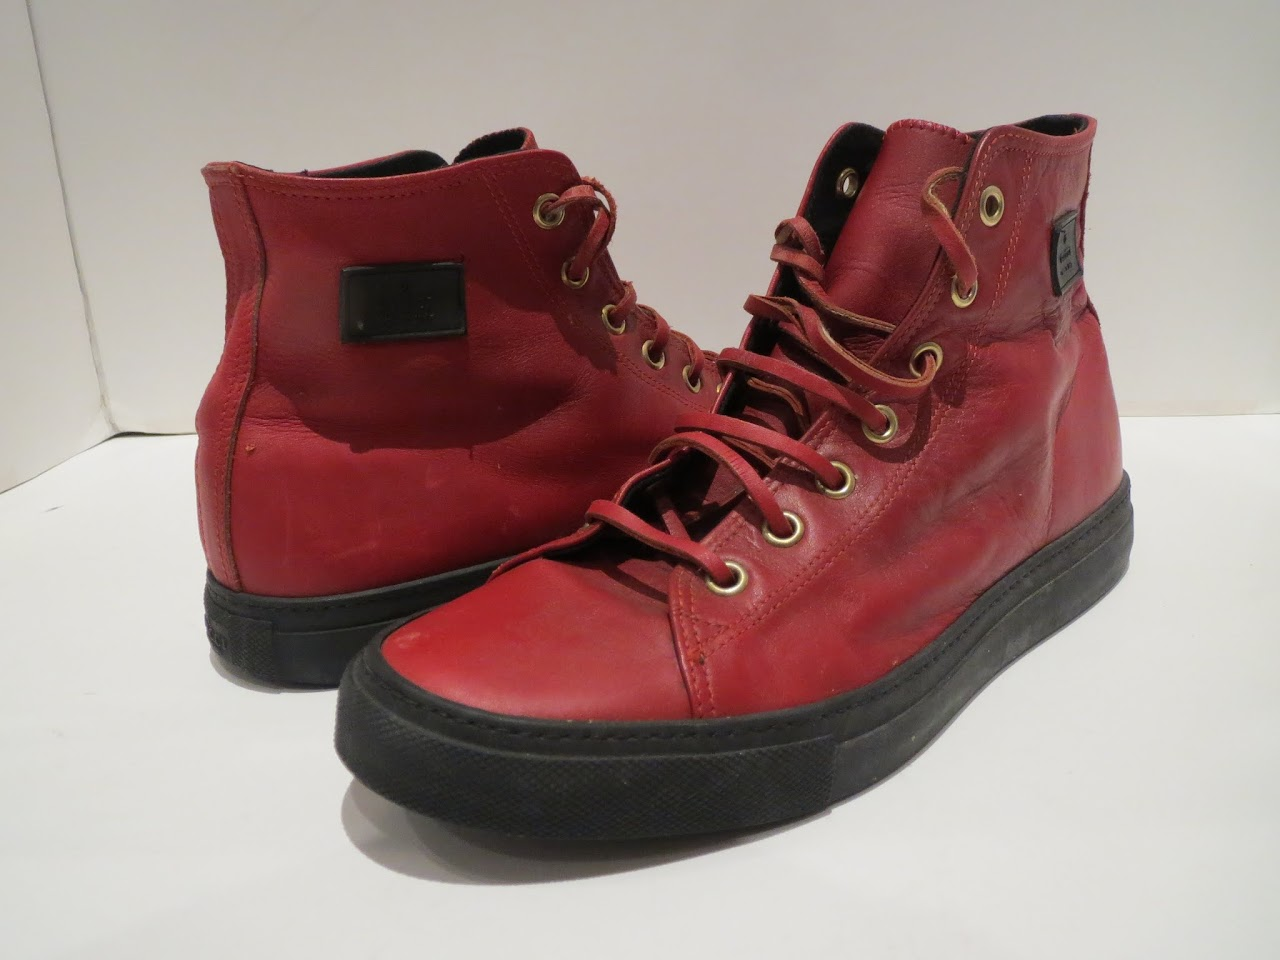 Gucci Fire Engine Red High-tops